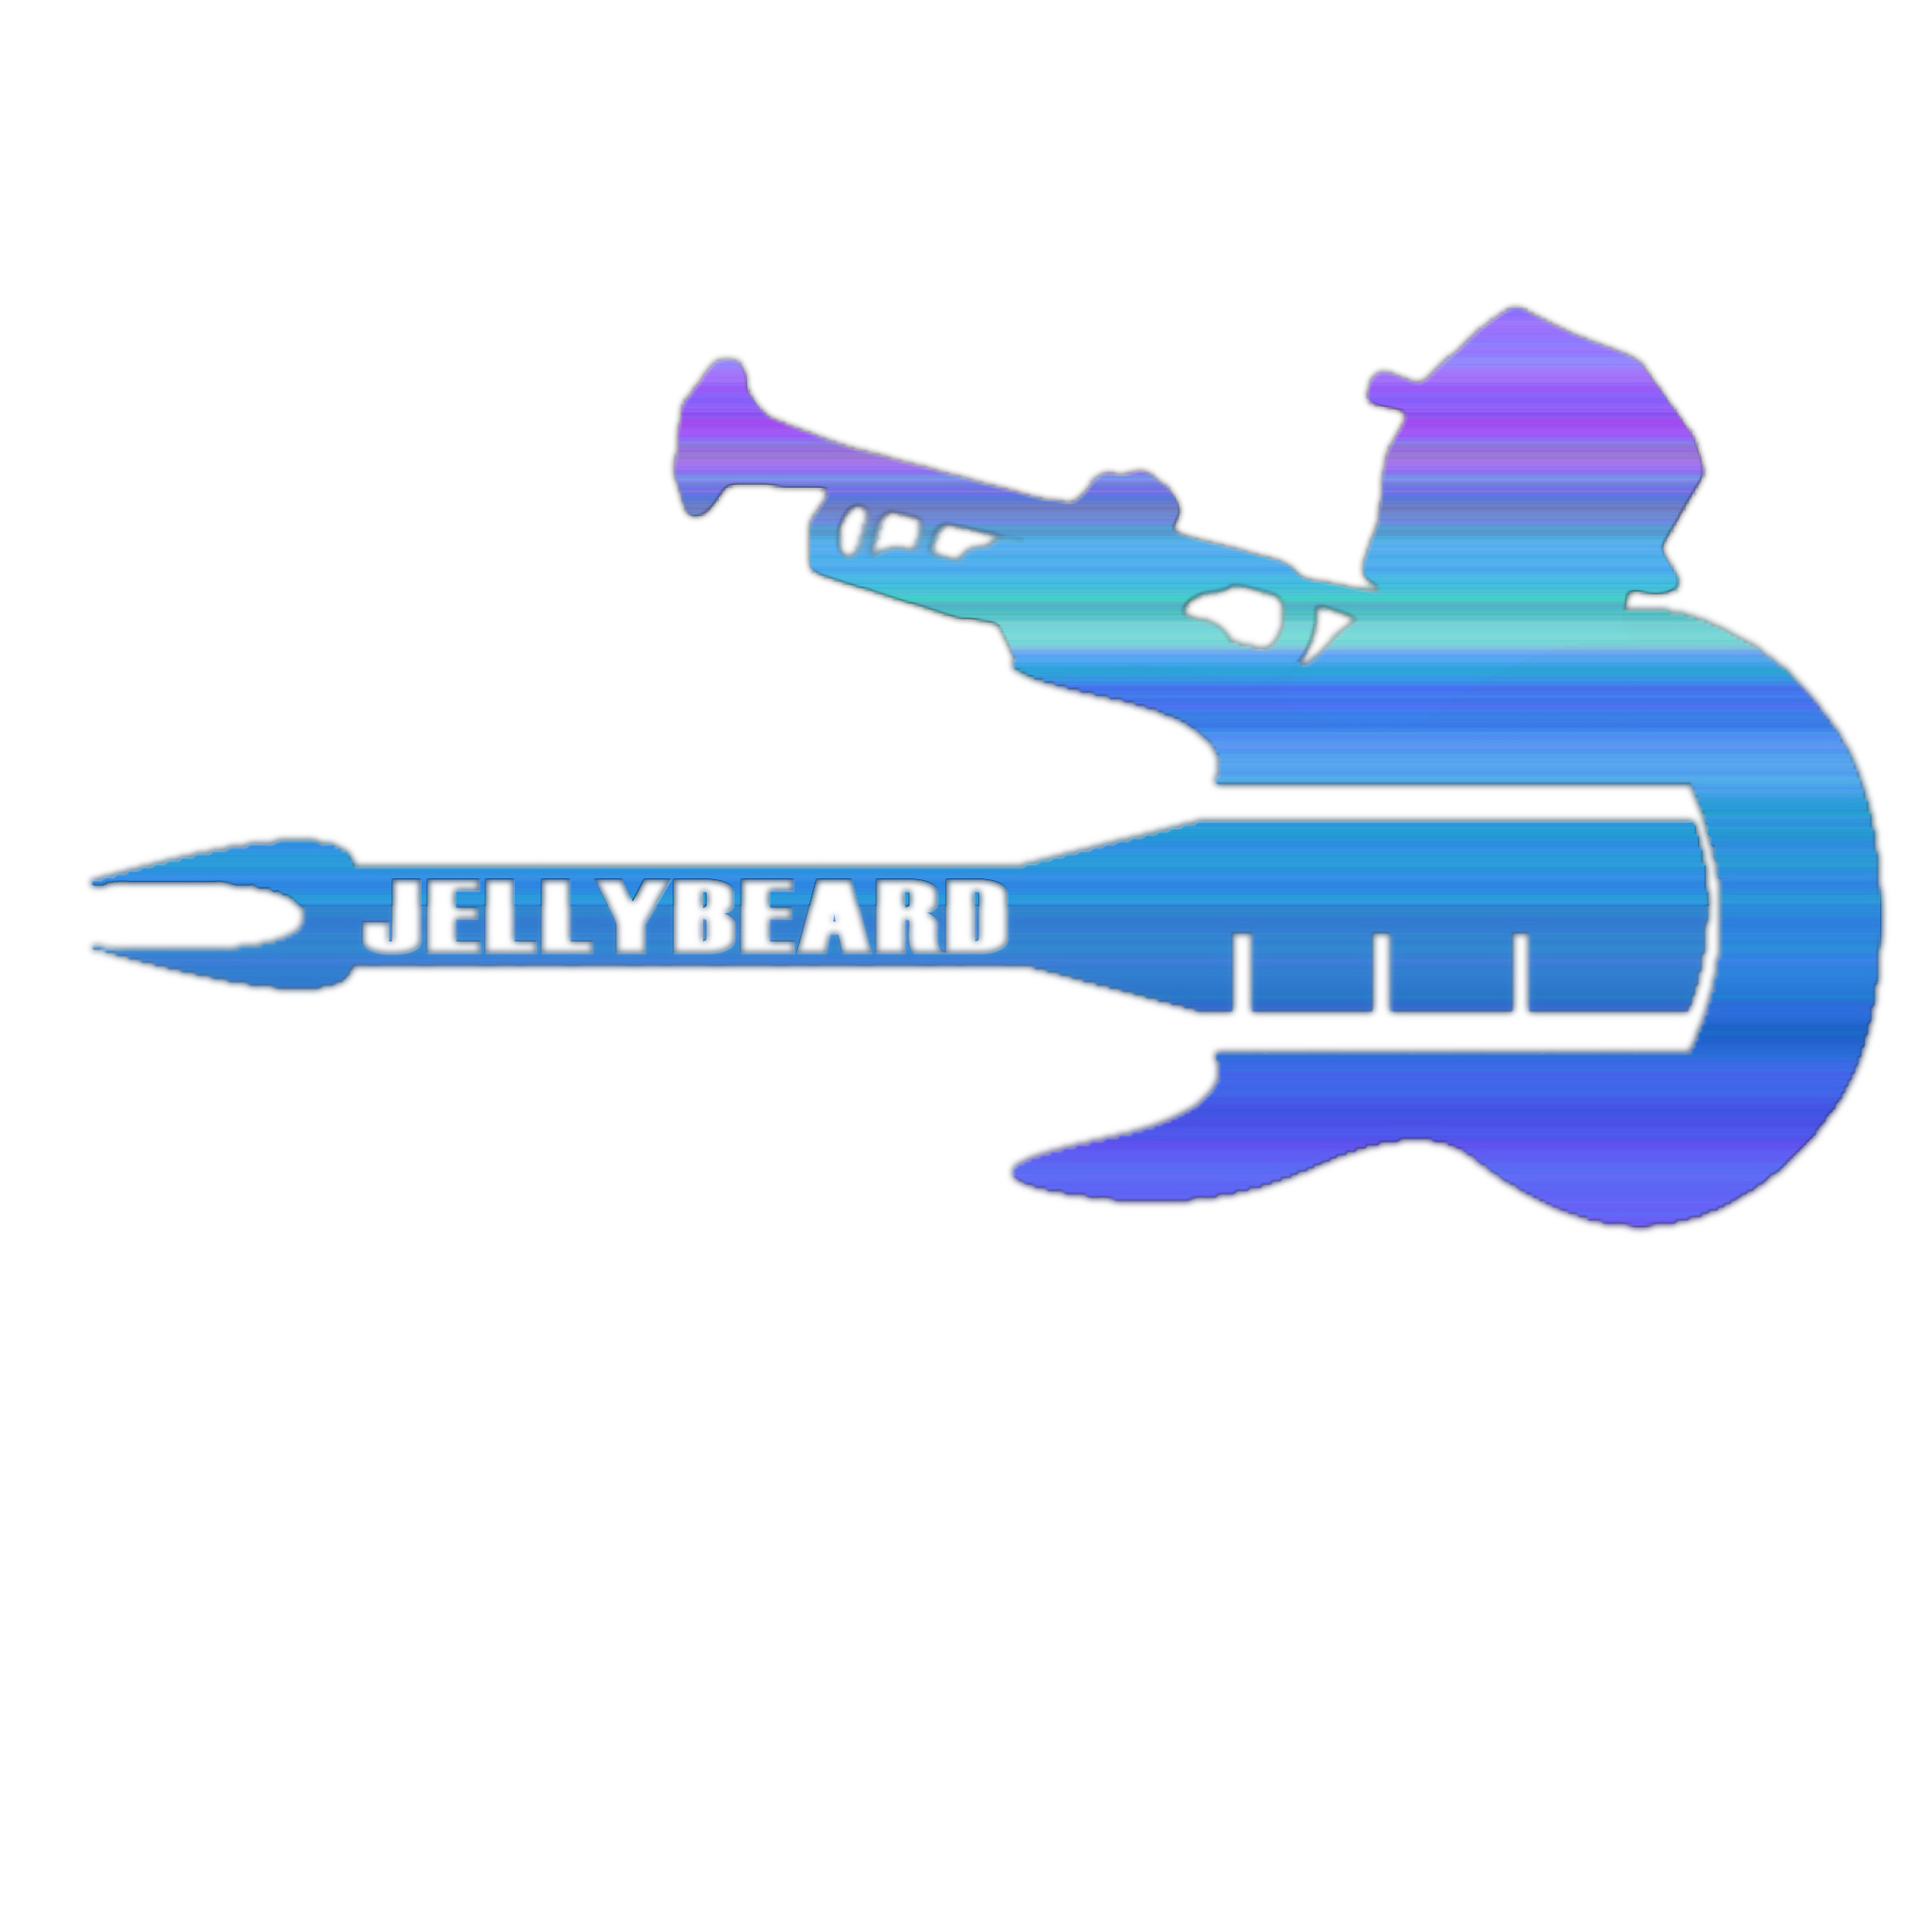 Logo Design Contests » jellybeard Logo Design » Design No. 34 by ...